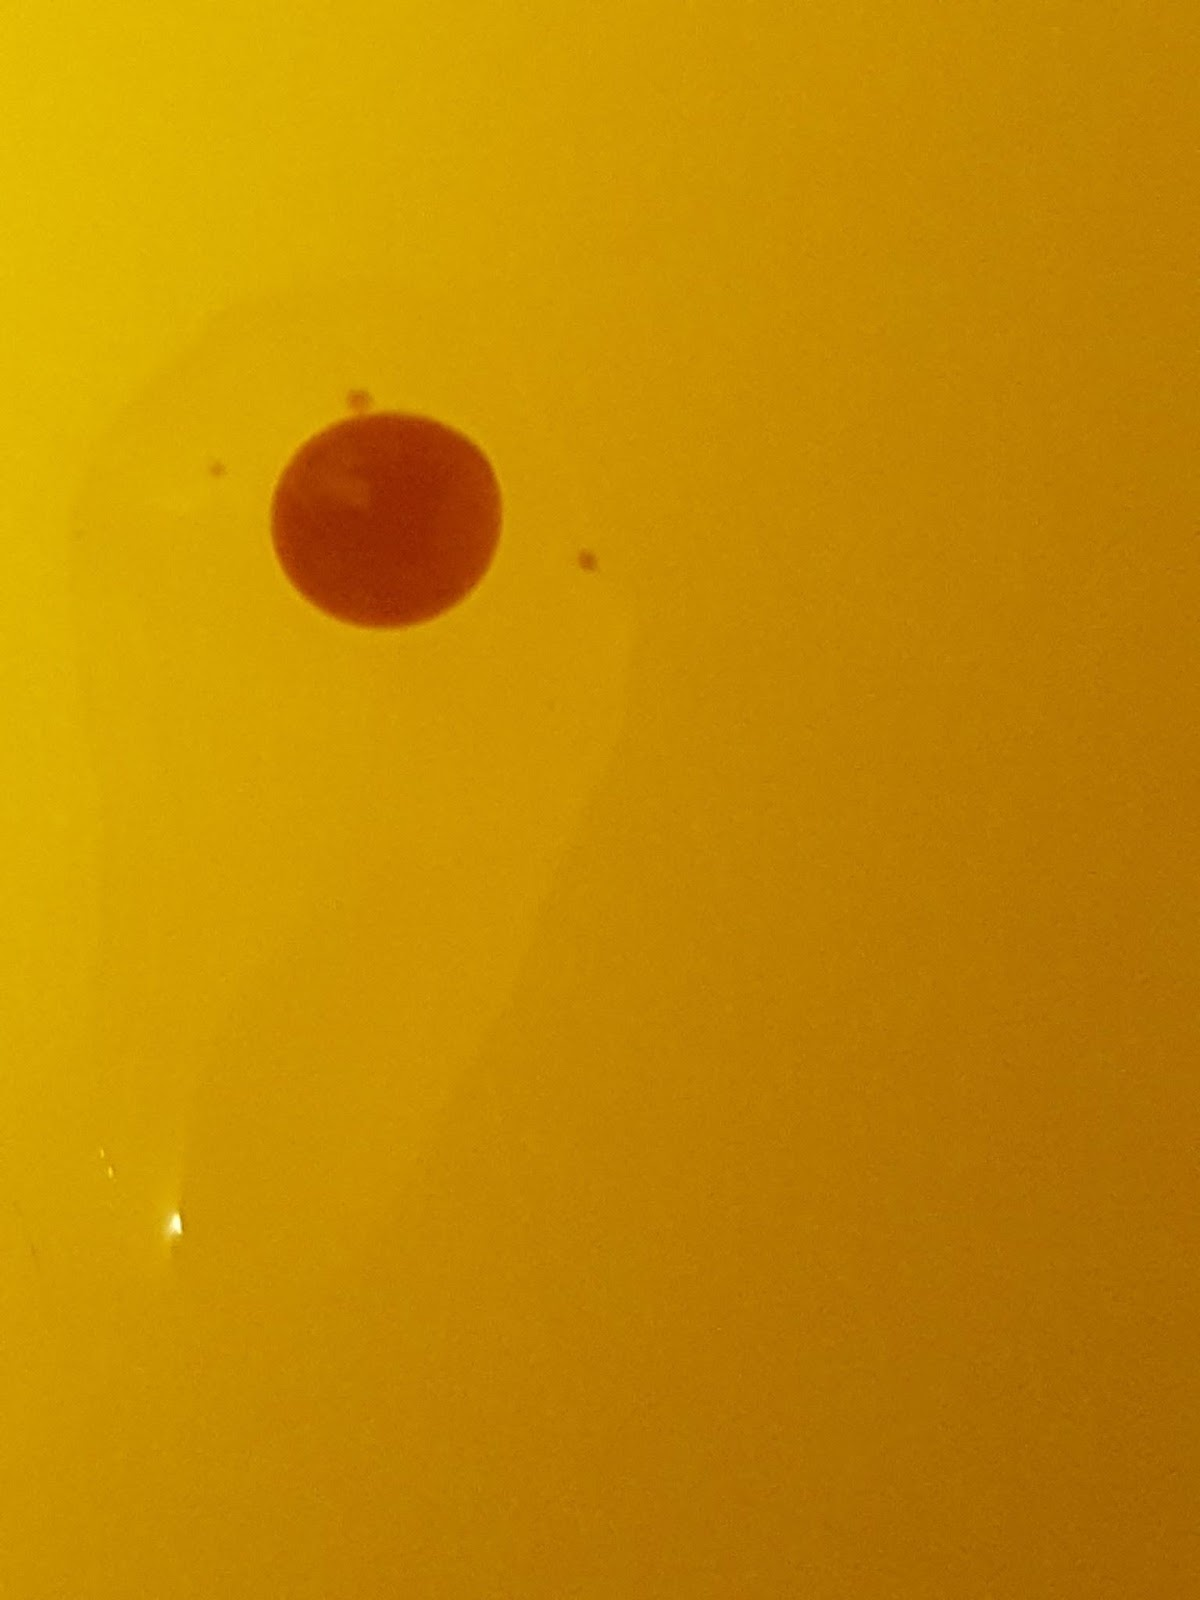 A brown drop is surrounded by a clear drop that is longer than it is wide. The background is yellow